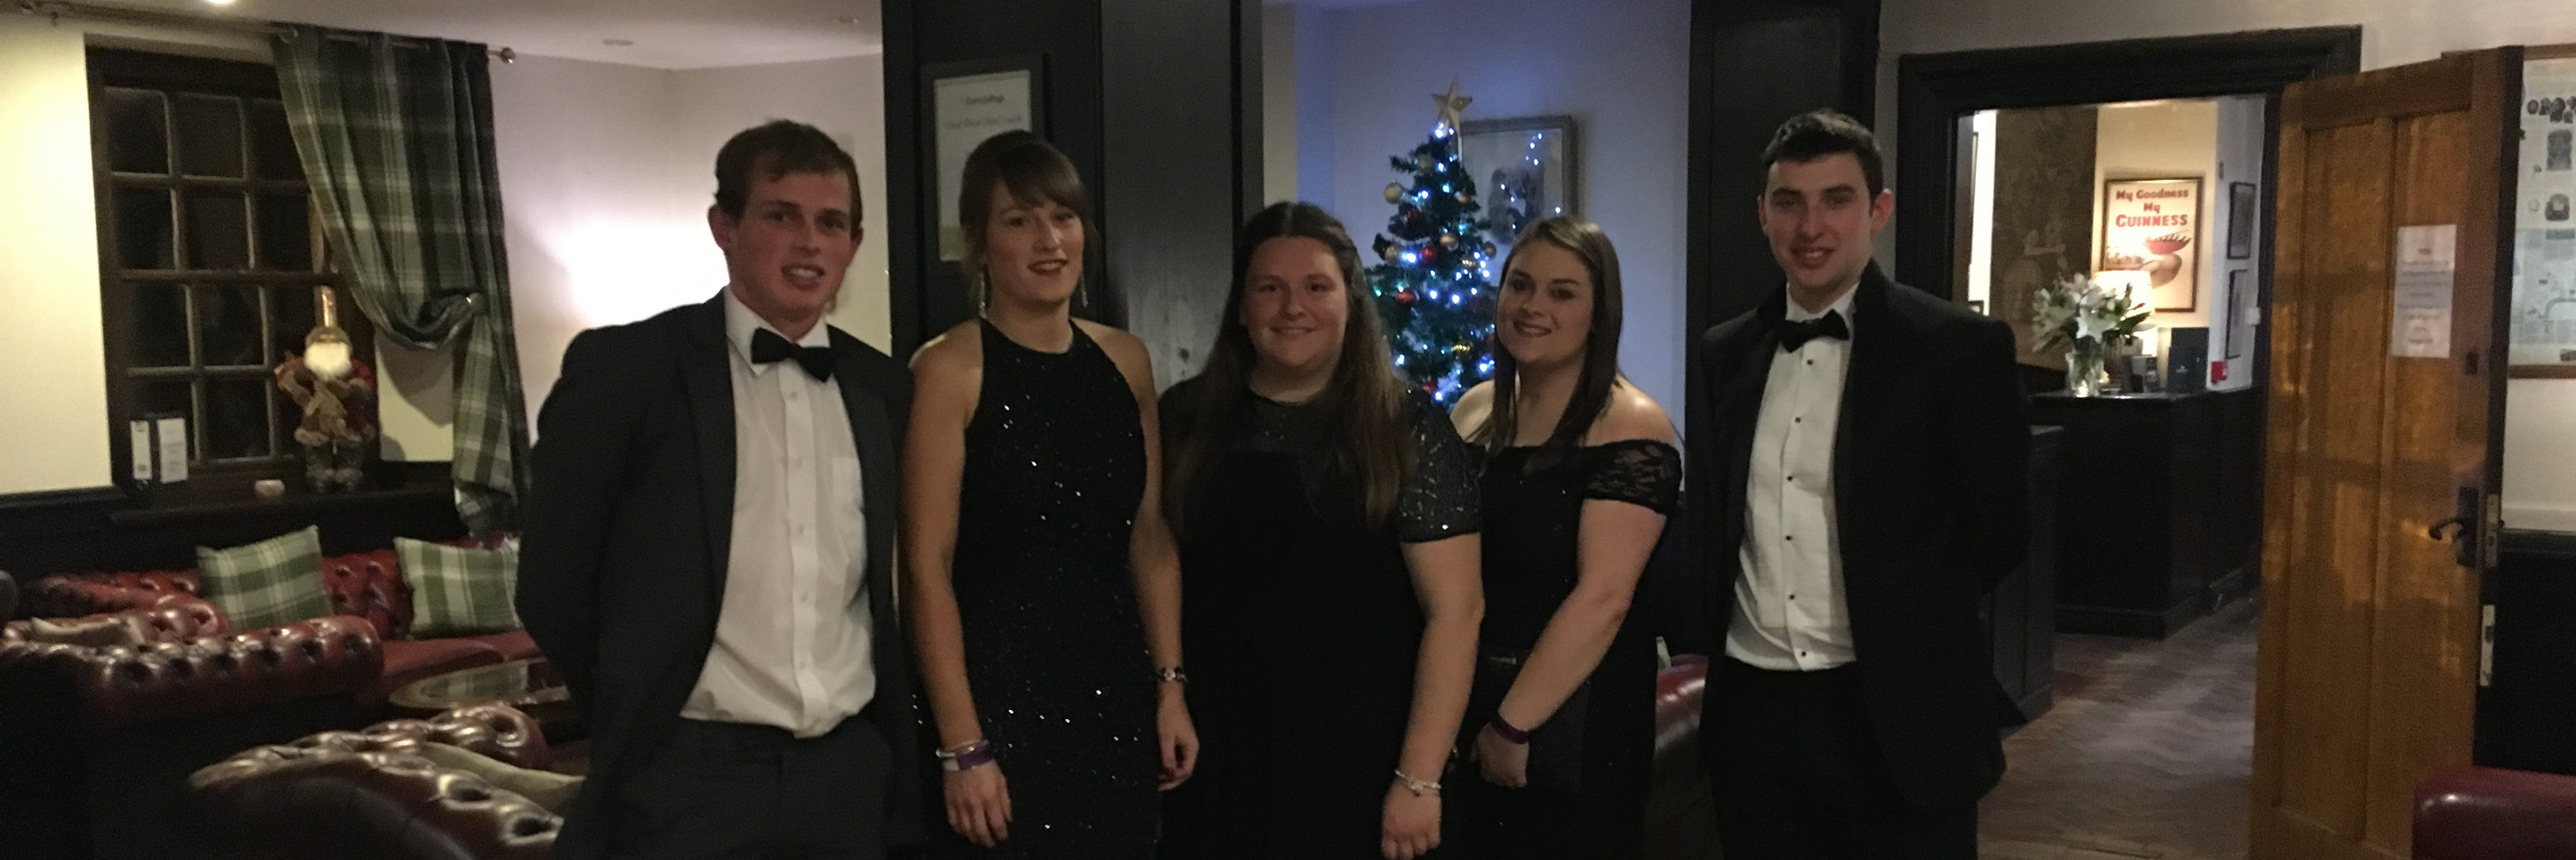 Officer Team - Christmas Ball 2018